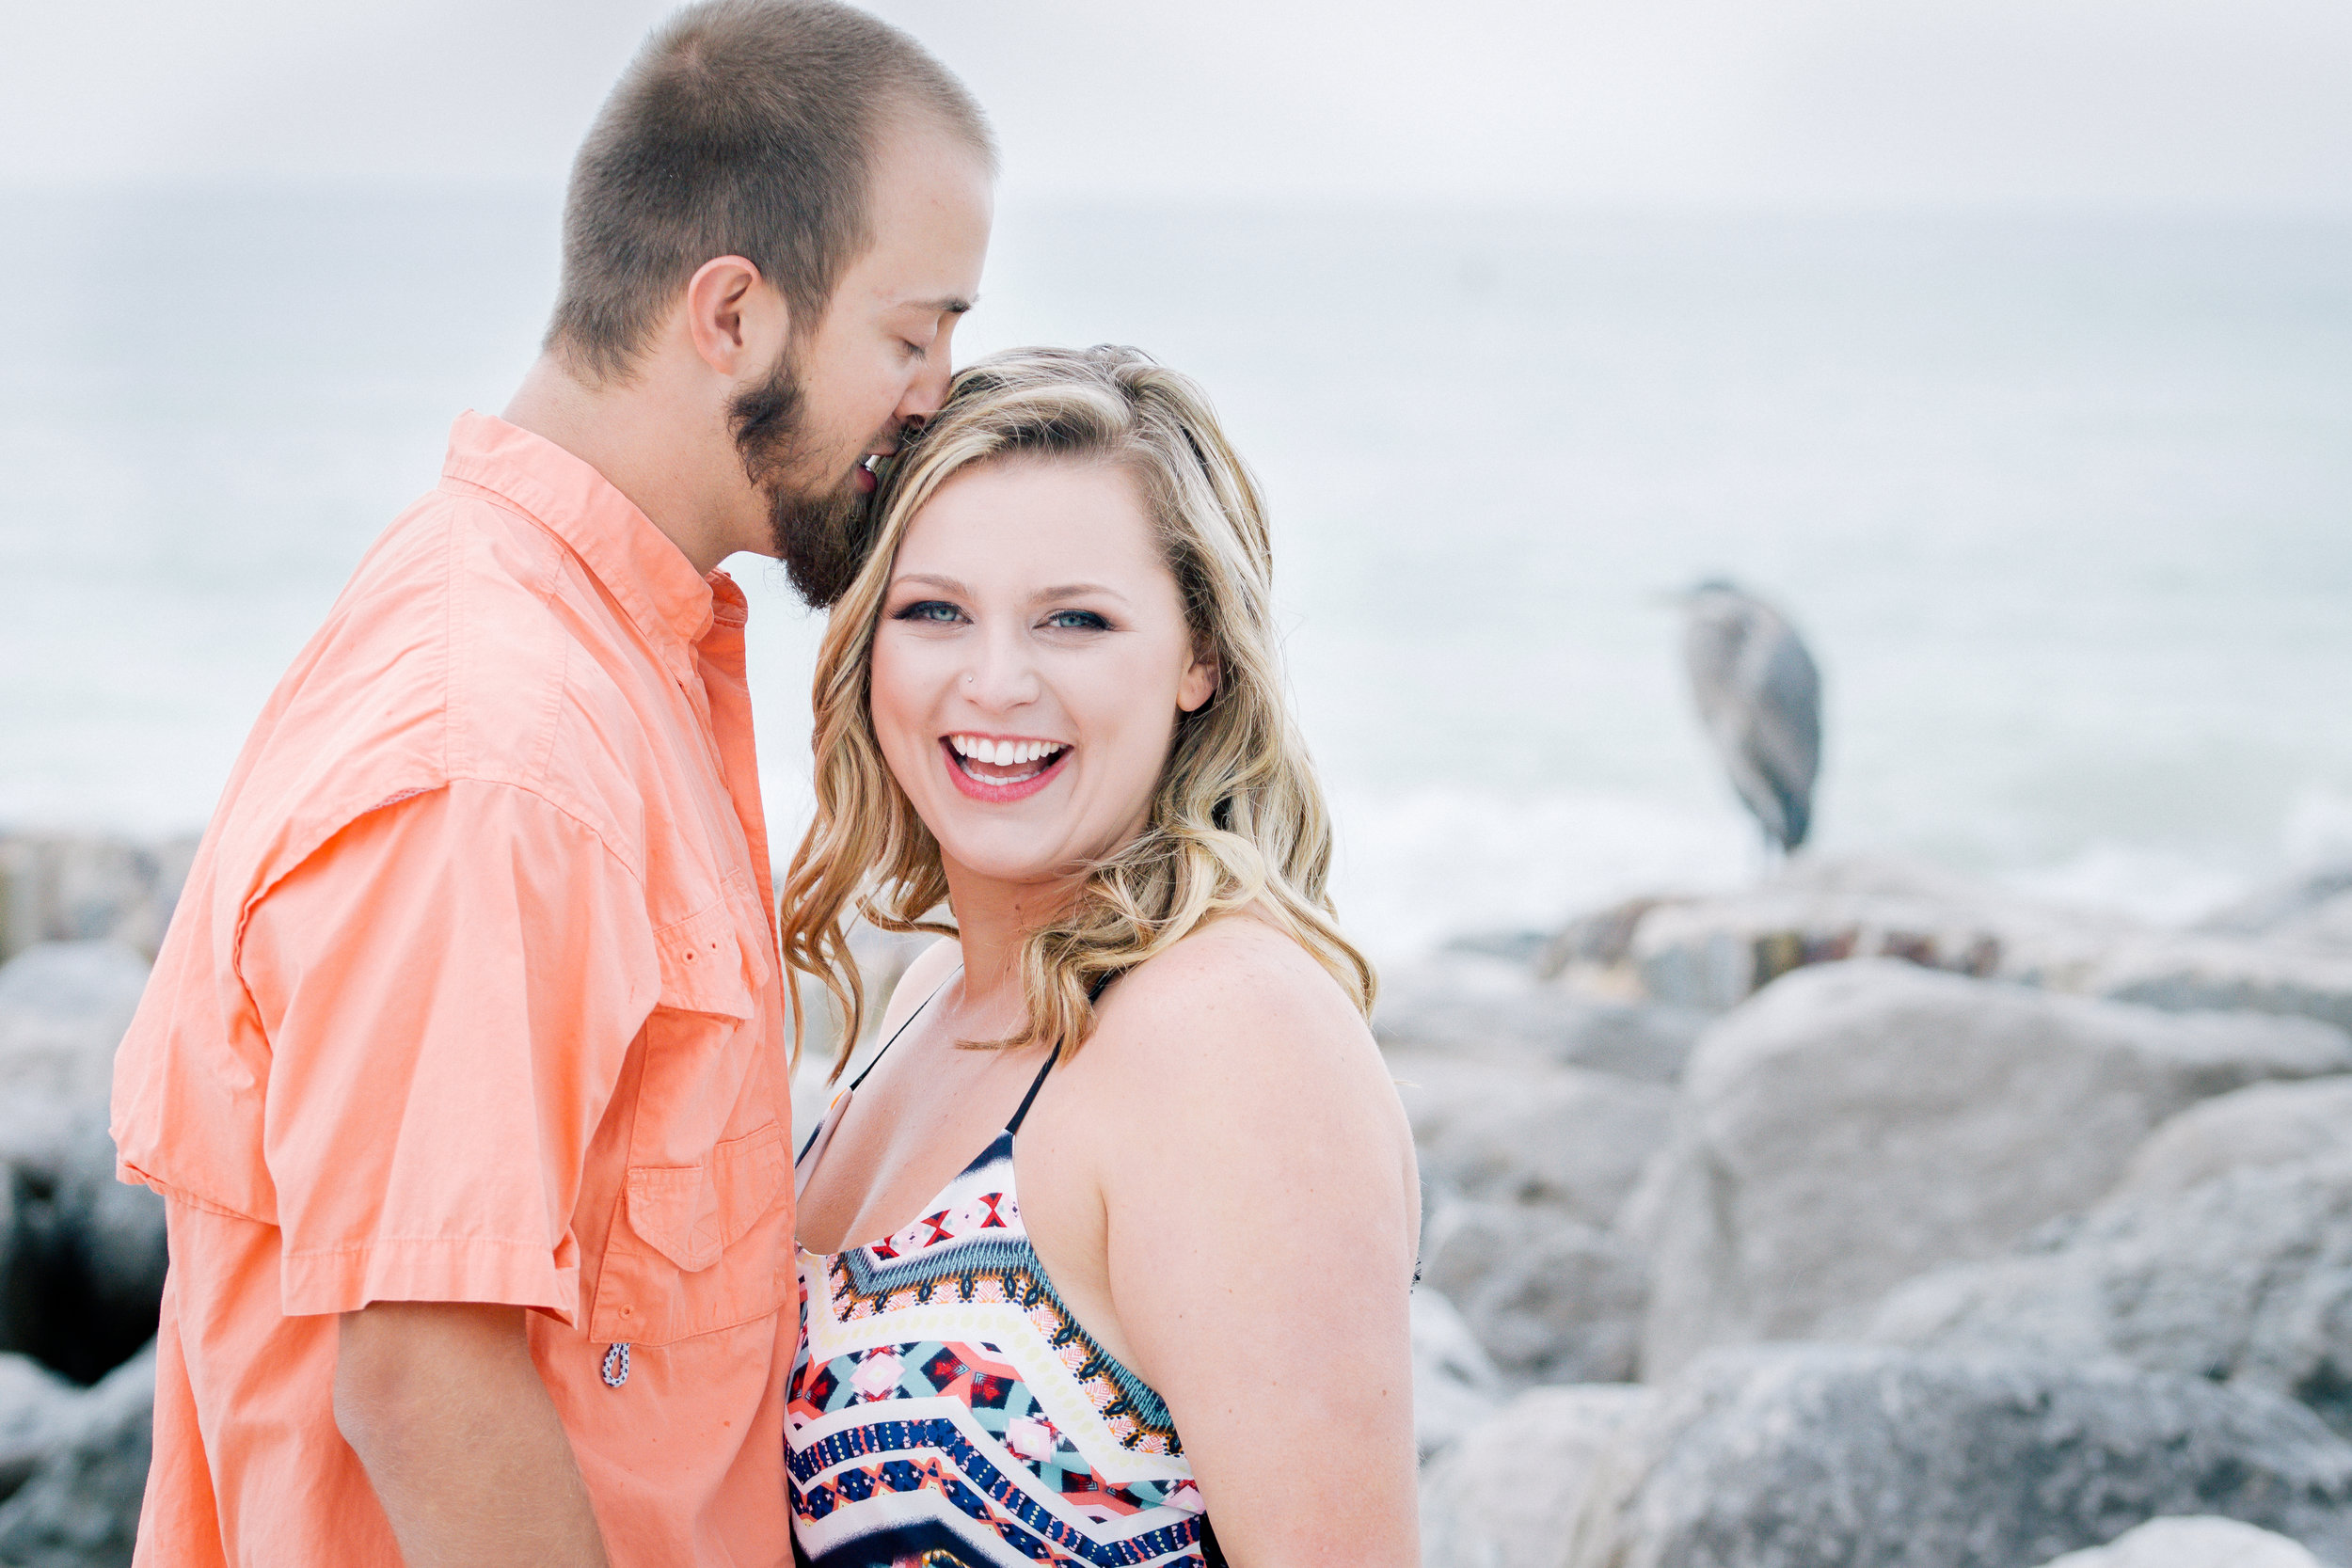 Tampa-Best-locations-for-engagement-session, Sunset-beach-engagement-session